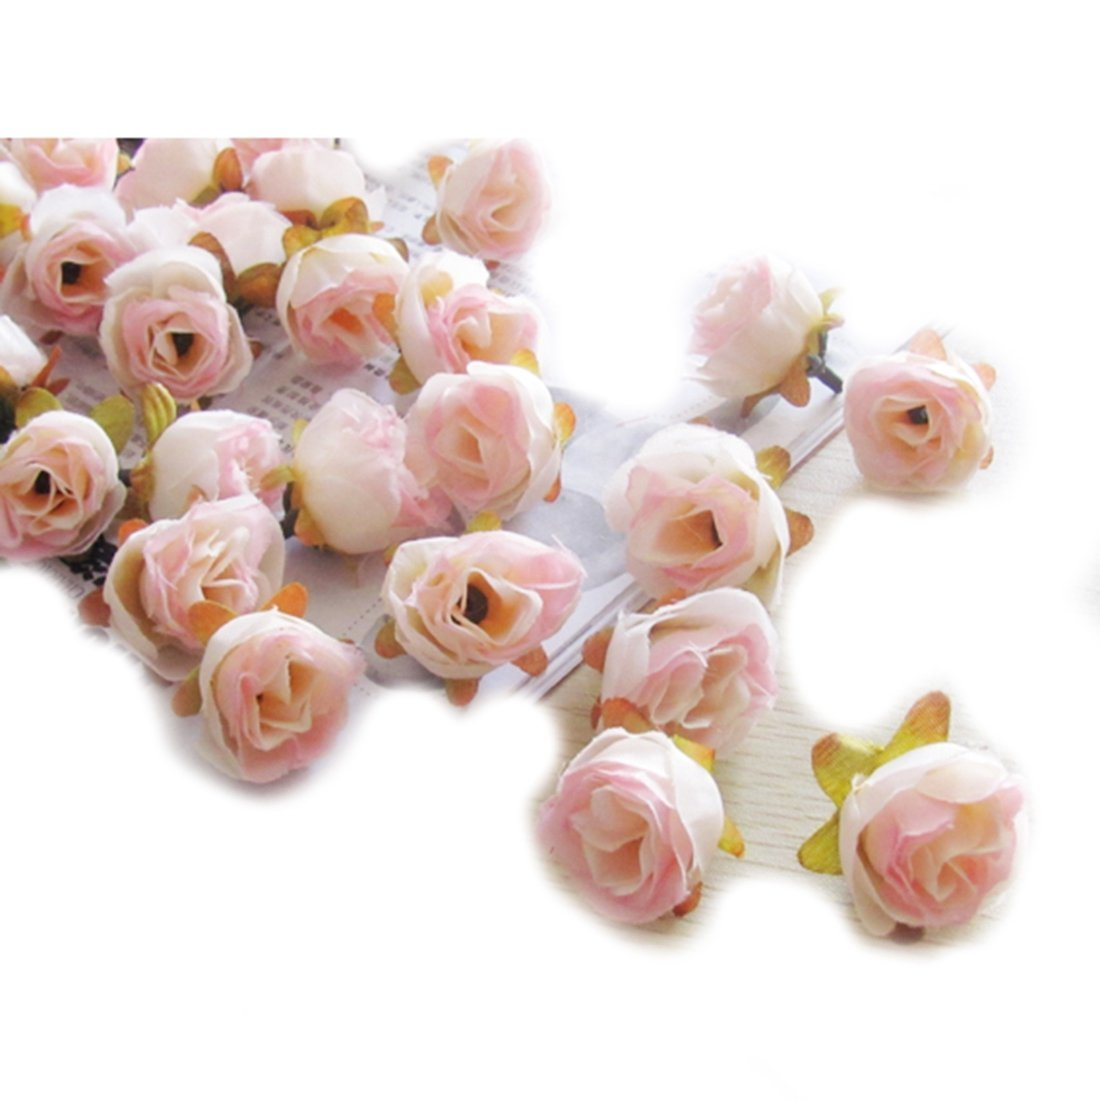 Cheap Pink Color Flowers Find Pink Color Flowers Deals On Line At